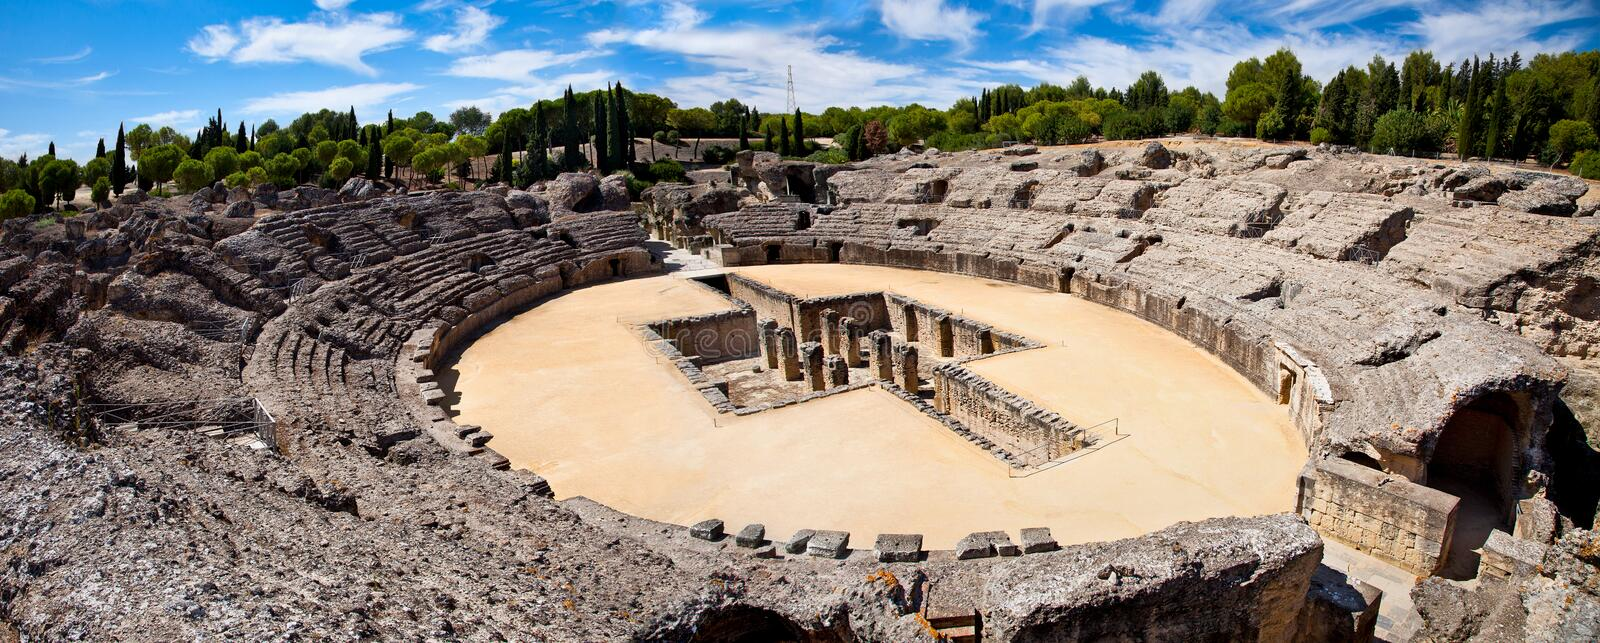 Ruine Italica, Espagne de Roman Amphitheater photo stock